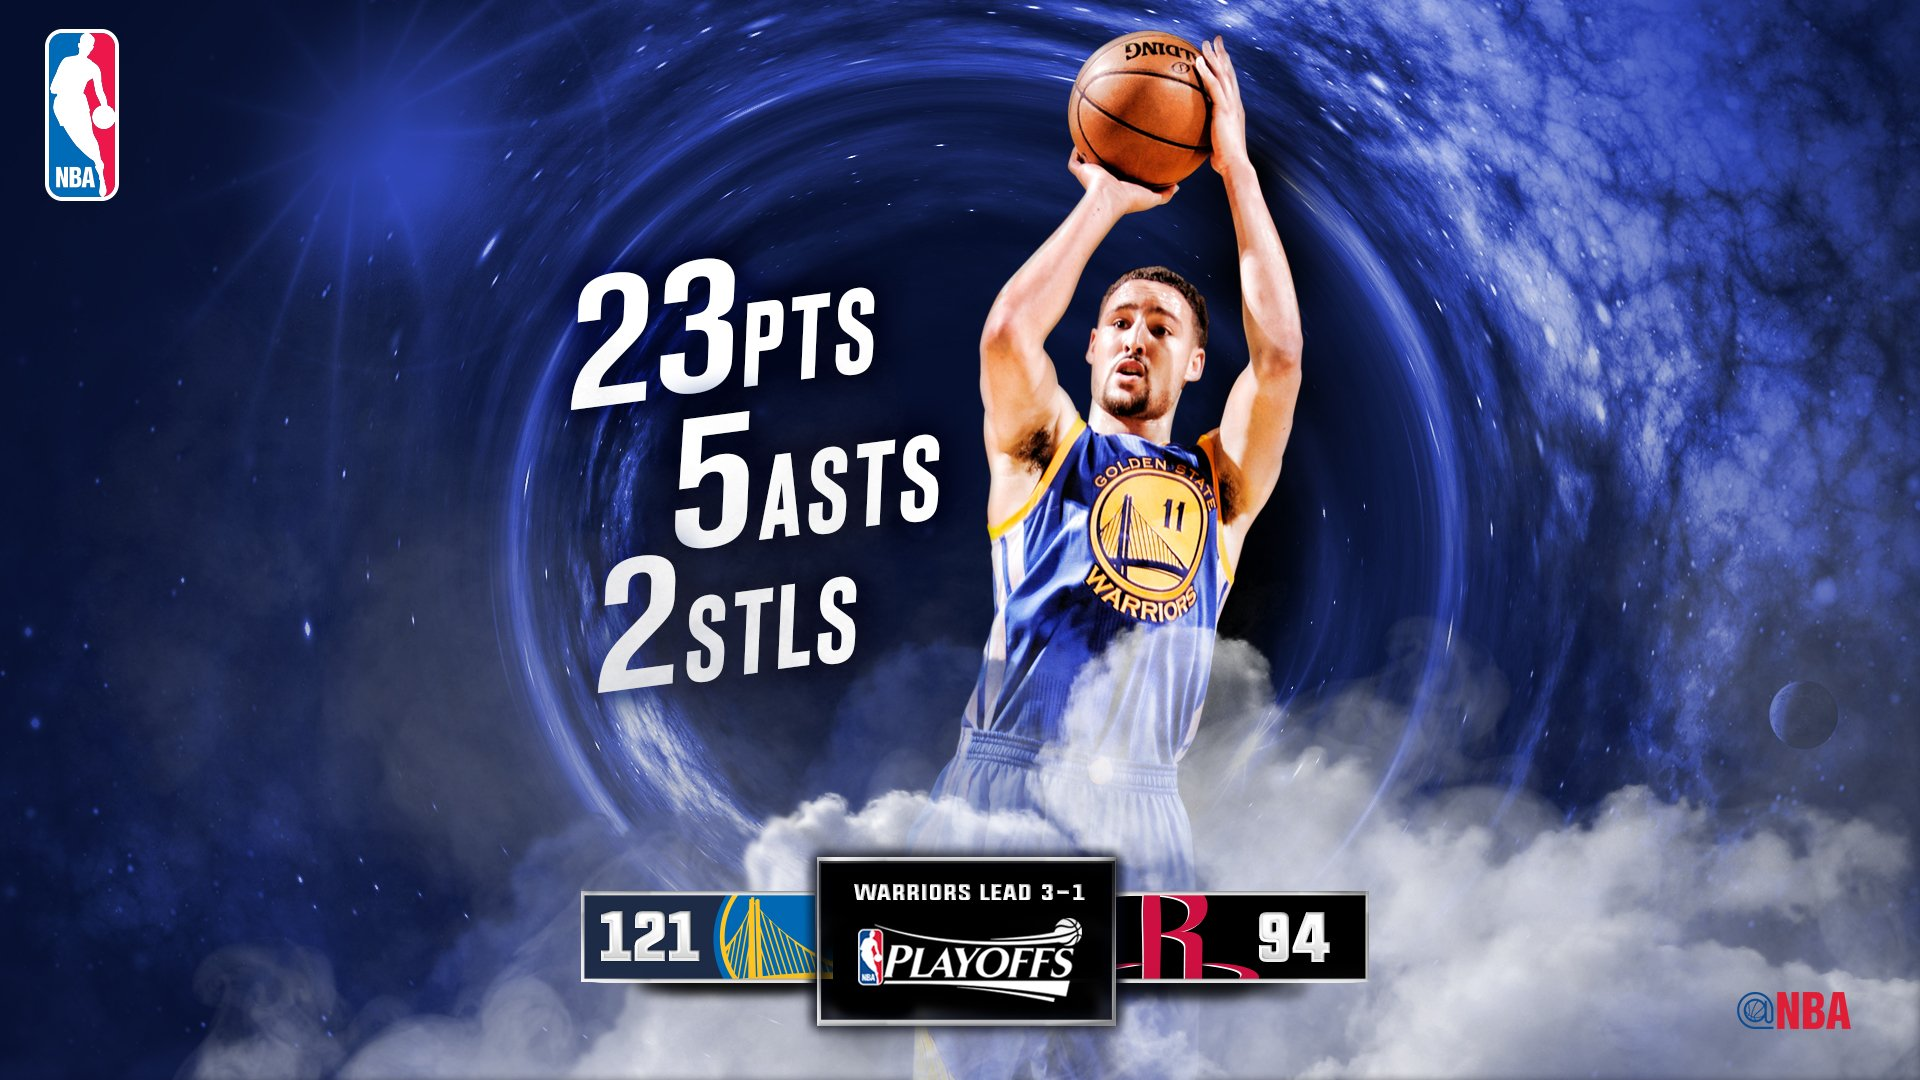 Klay Thompson hits 7 of @Warriors' @NBA record 21 3PM in a post-season game to go w/ 5 ASTs, 2 STLs. https://t.co/QzFDRnU92B